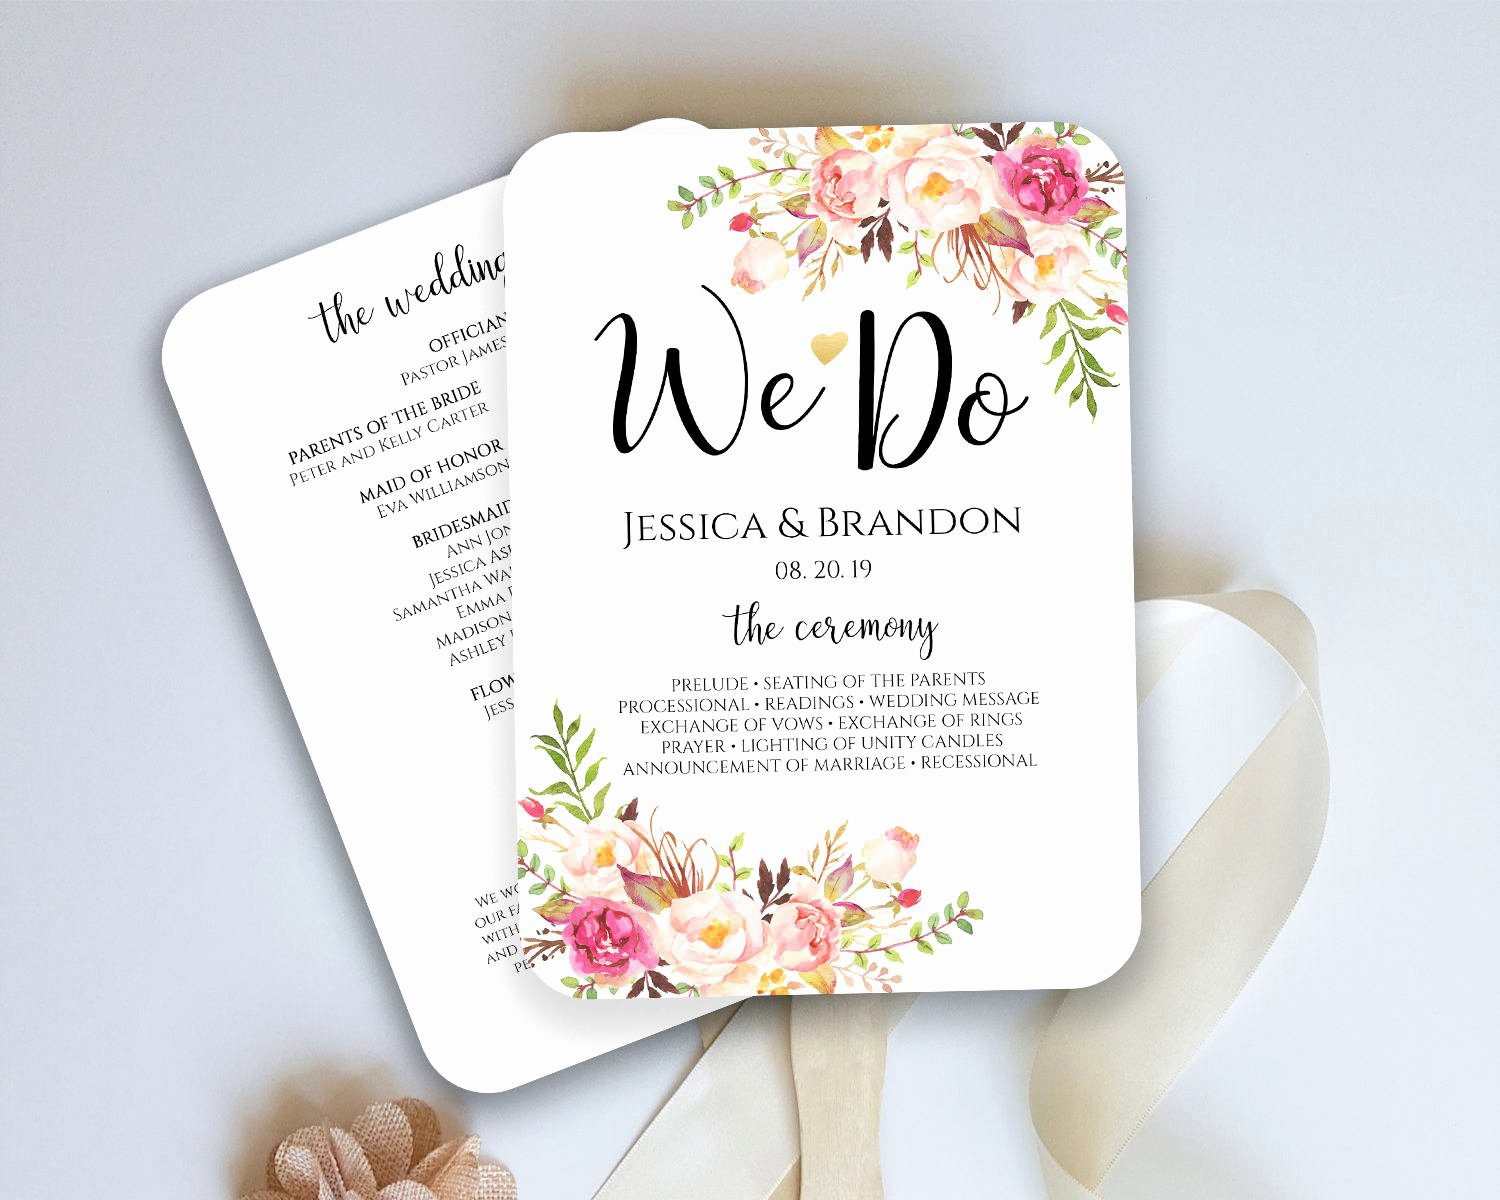 Wedding Fan Templates Free Inspirational Wedding Program Fan Template Ceremony Program Fan Wedding